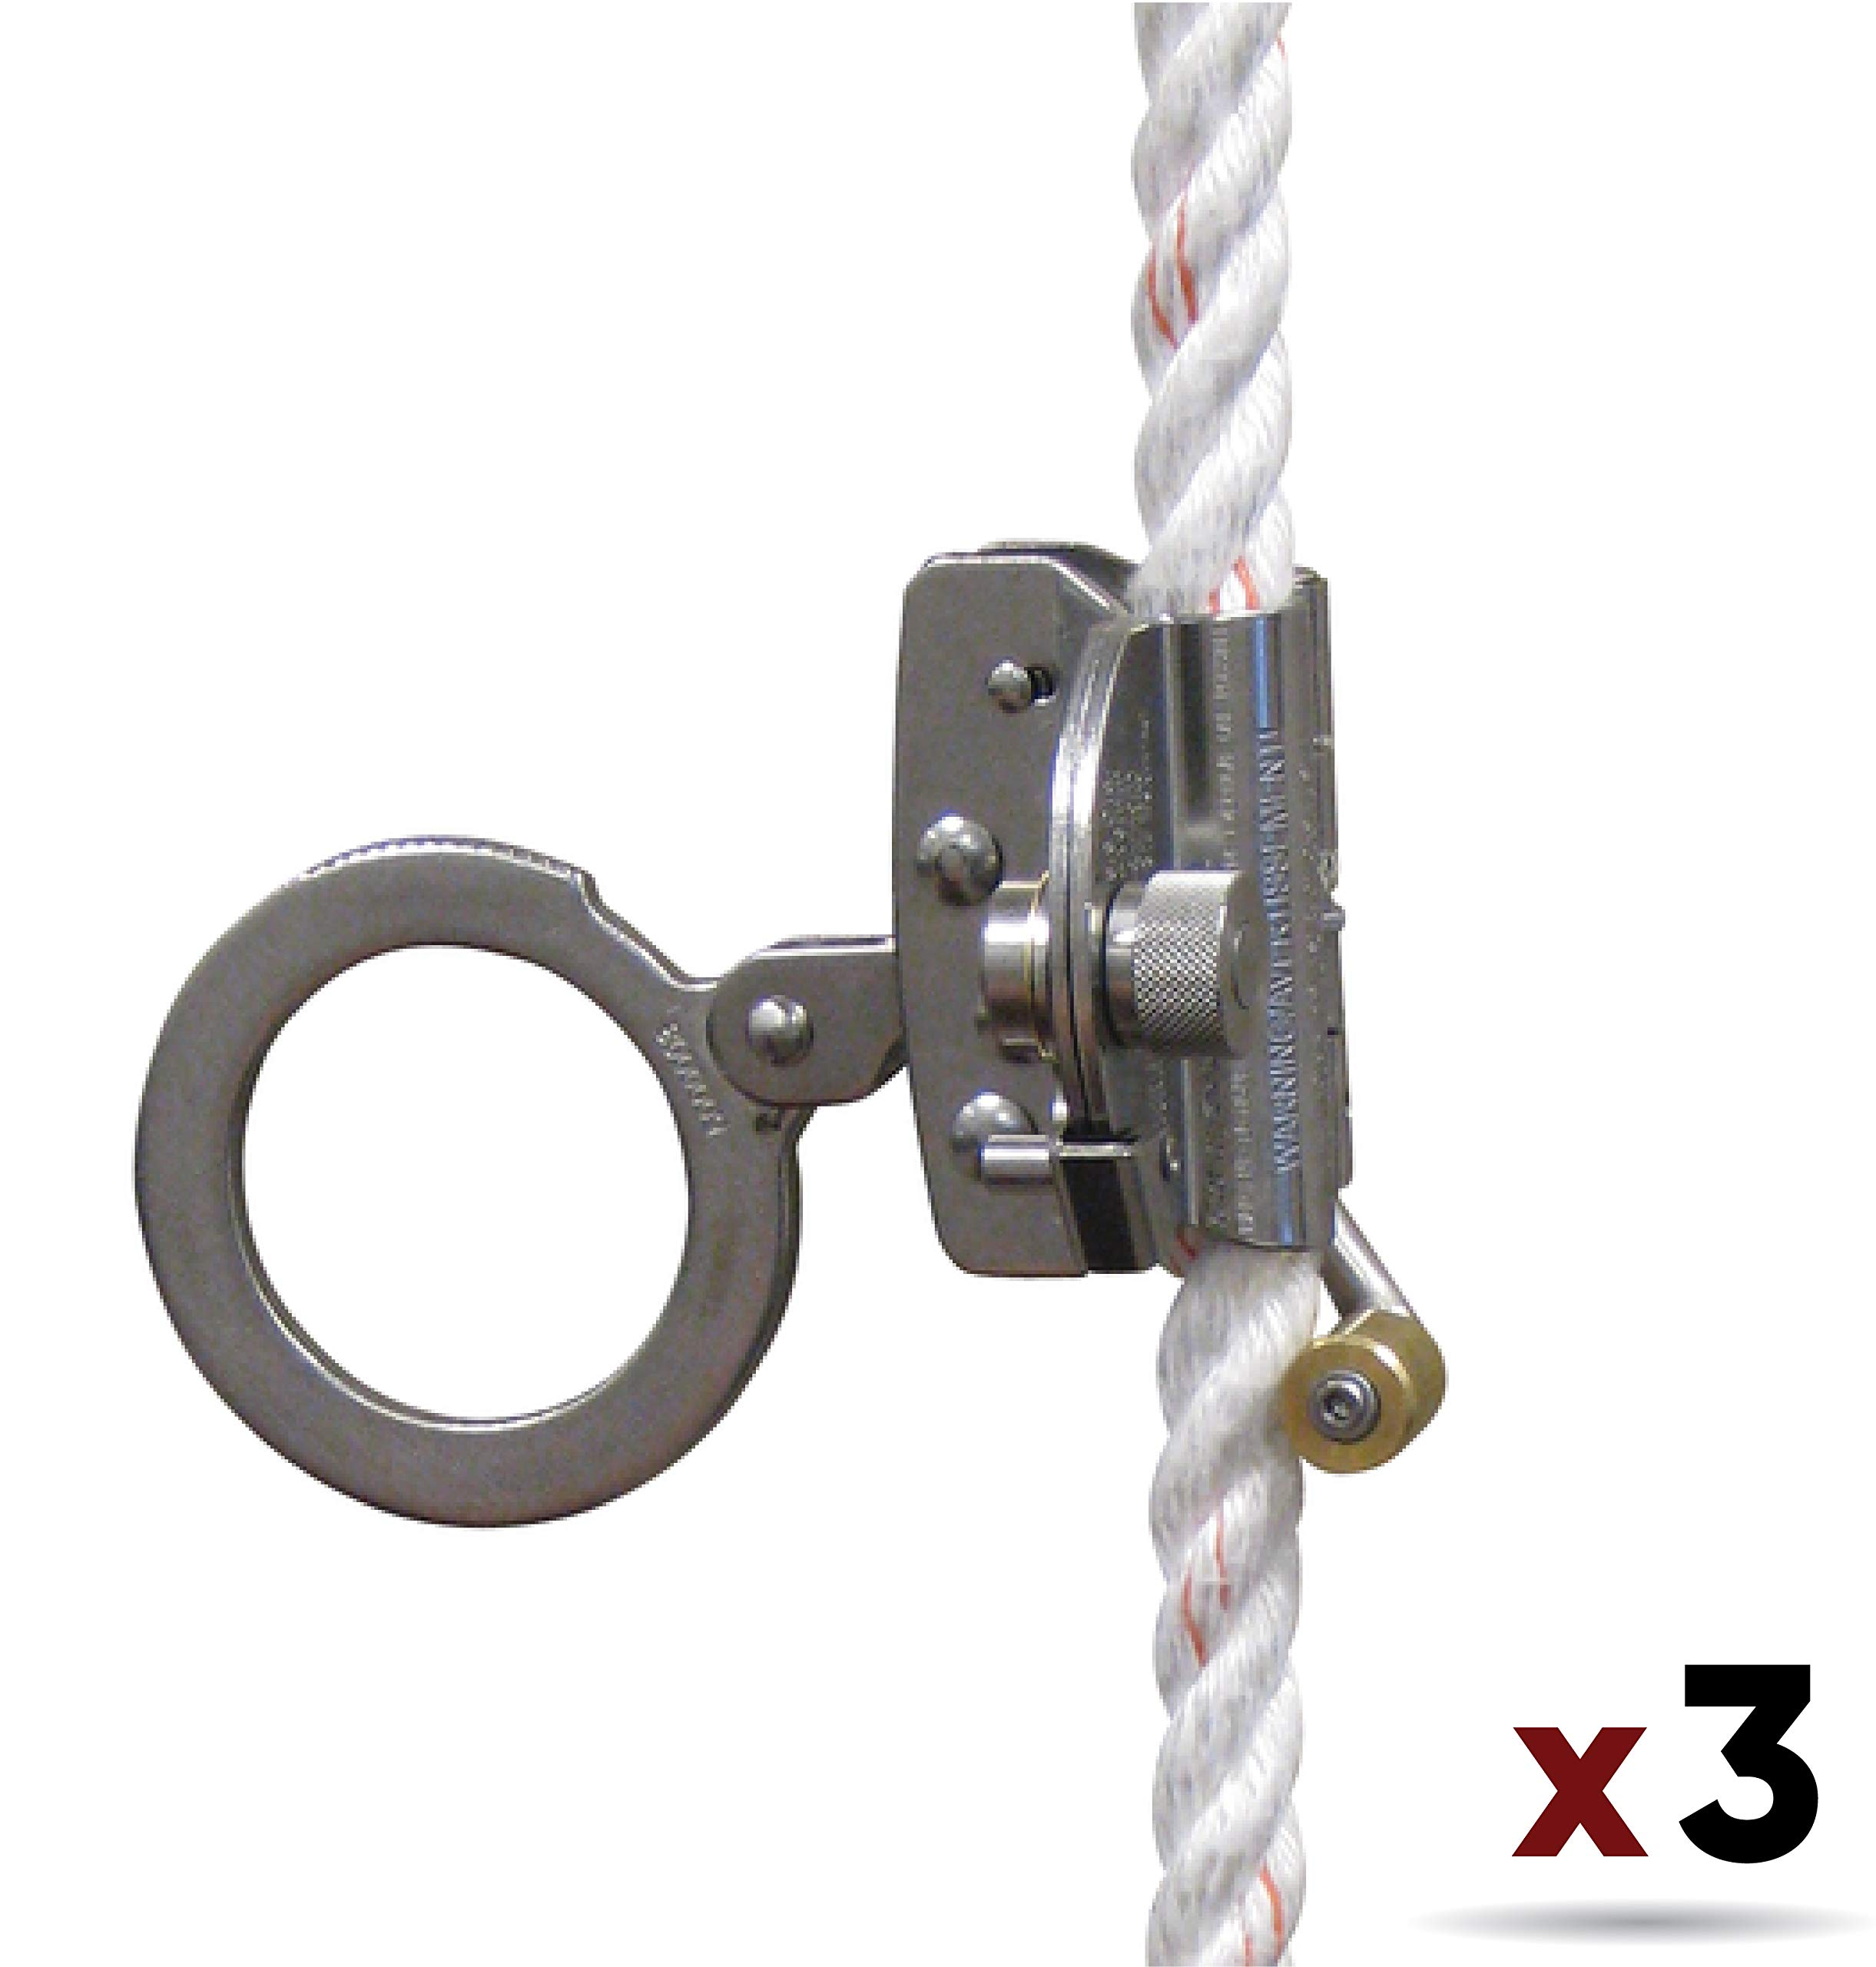 3M Protecta 5000003 Rope Grab for 5/8'' Polyester/Polypropylene Rope, Silver (3 Pack) by 3M Fall Protection Business